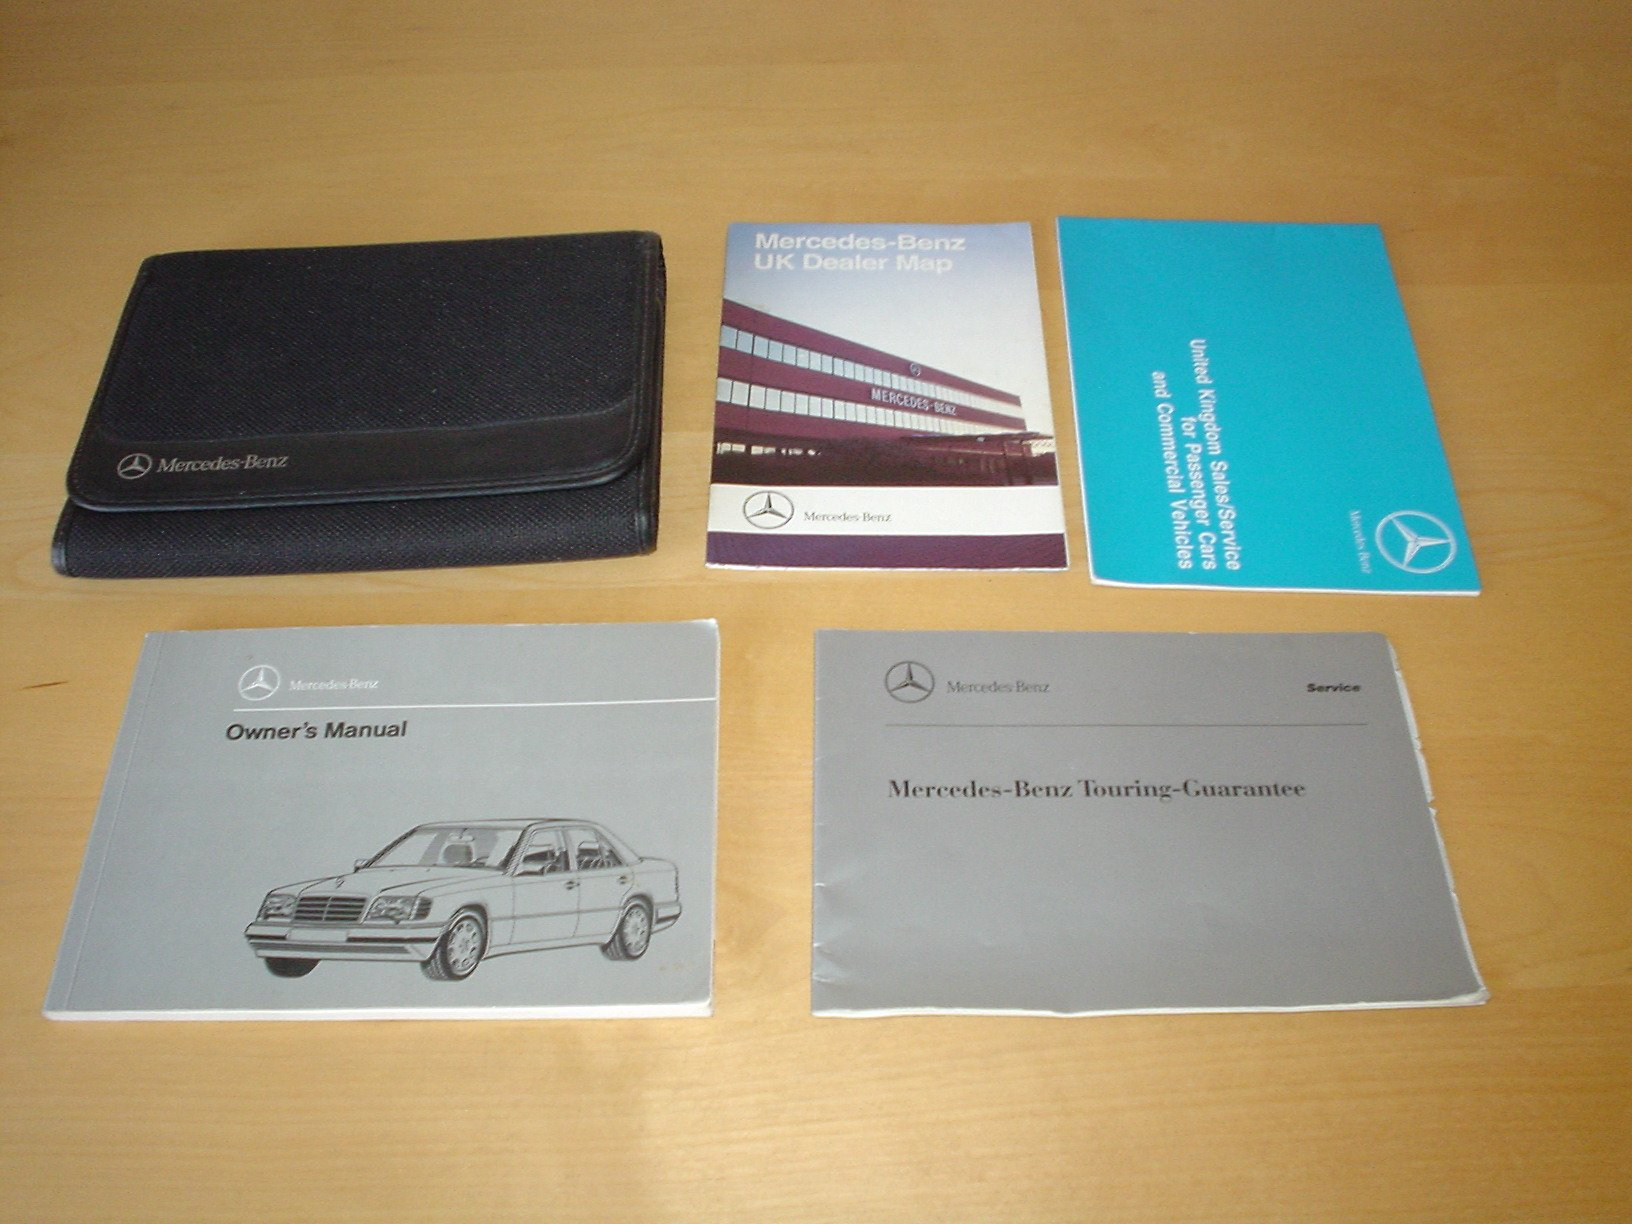 MERCEDES BENZ W124 OWNERS MANUAL HANDBOOK (1985 - 1997) - E200 E220 E280  E300 4MATIC E320 E420 E500 (E 200 220 280 300 320 420 500) - OWNER'S HAND  BOOK ...